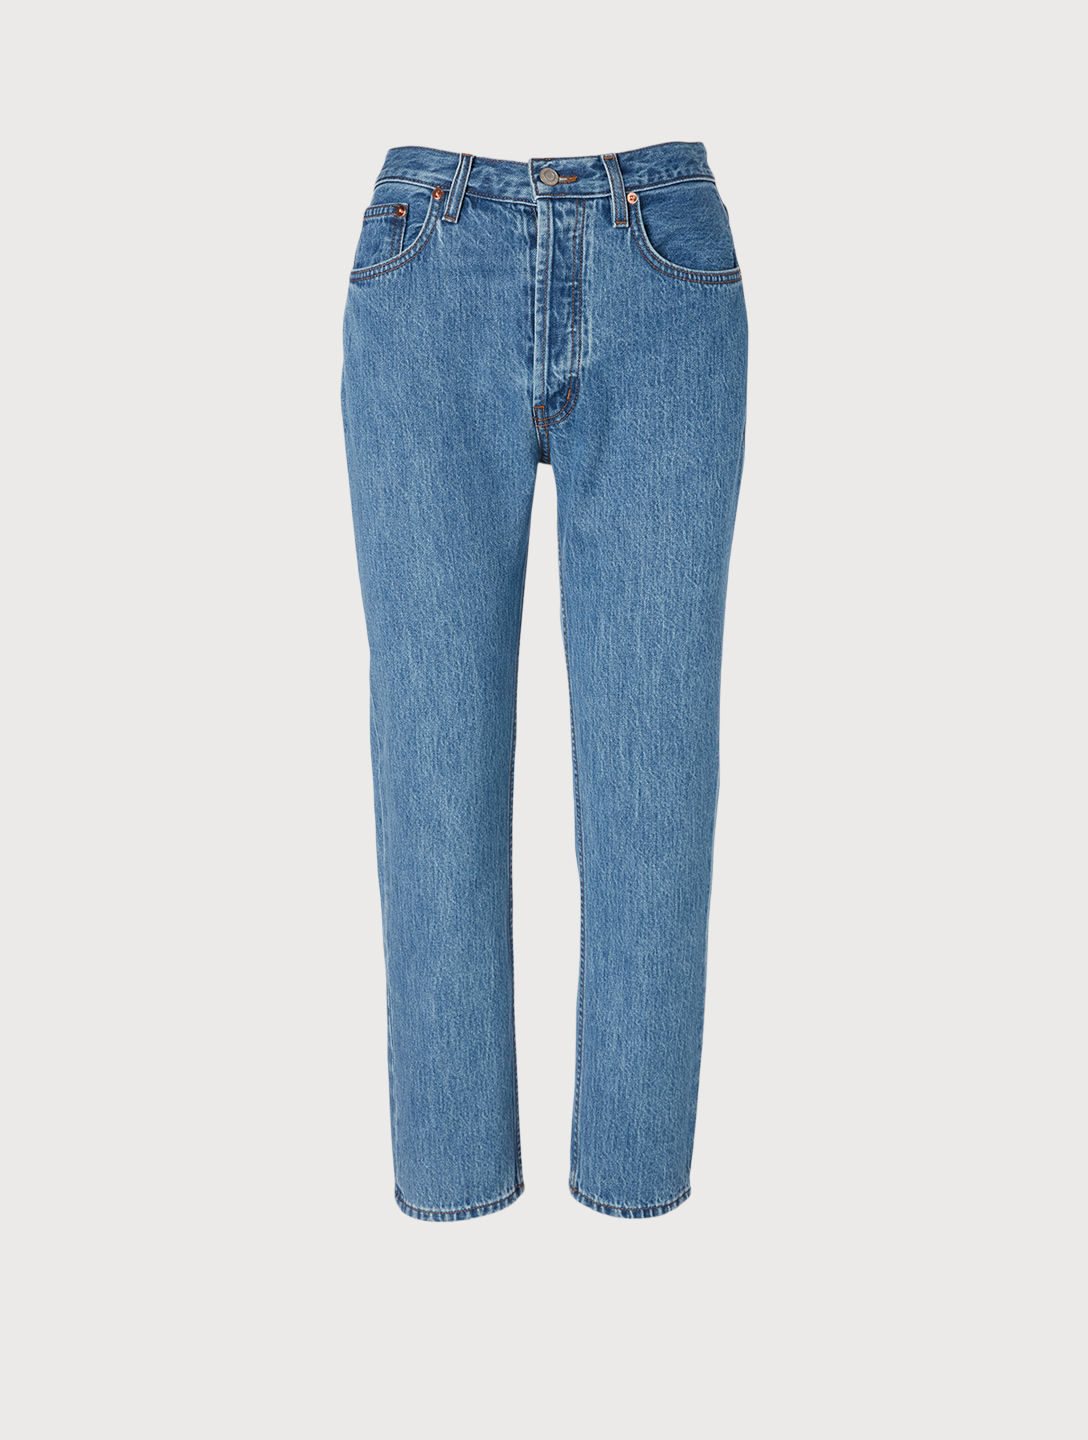 STILL HERE Tate Fragmented Pieces Crop Jeans Women's Blue